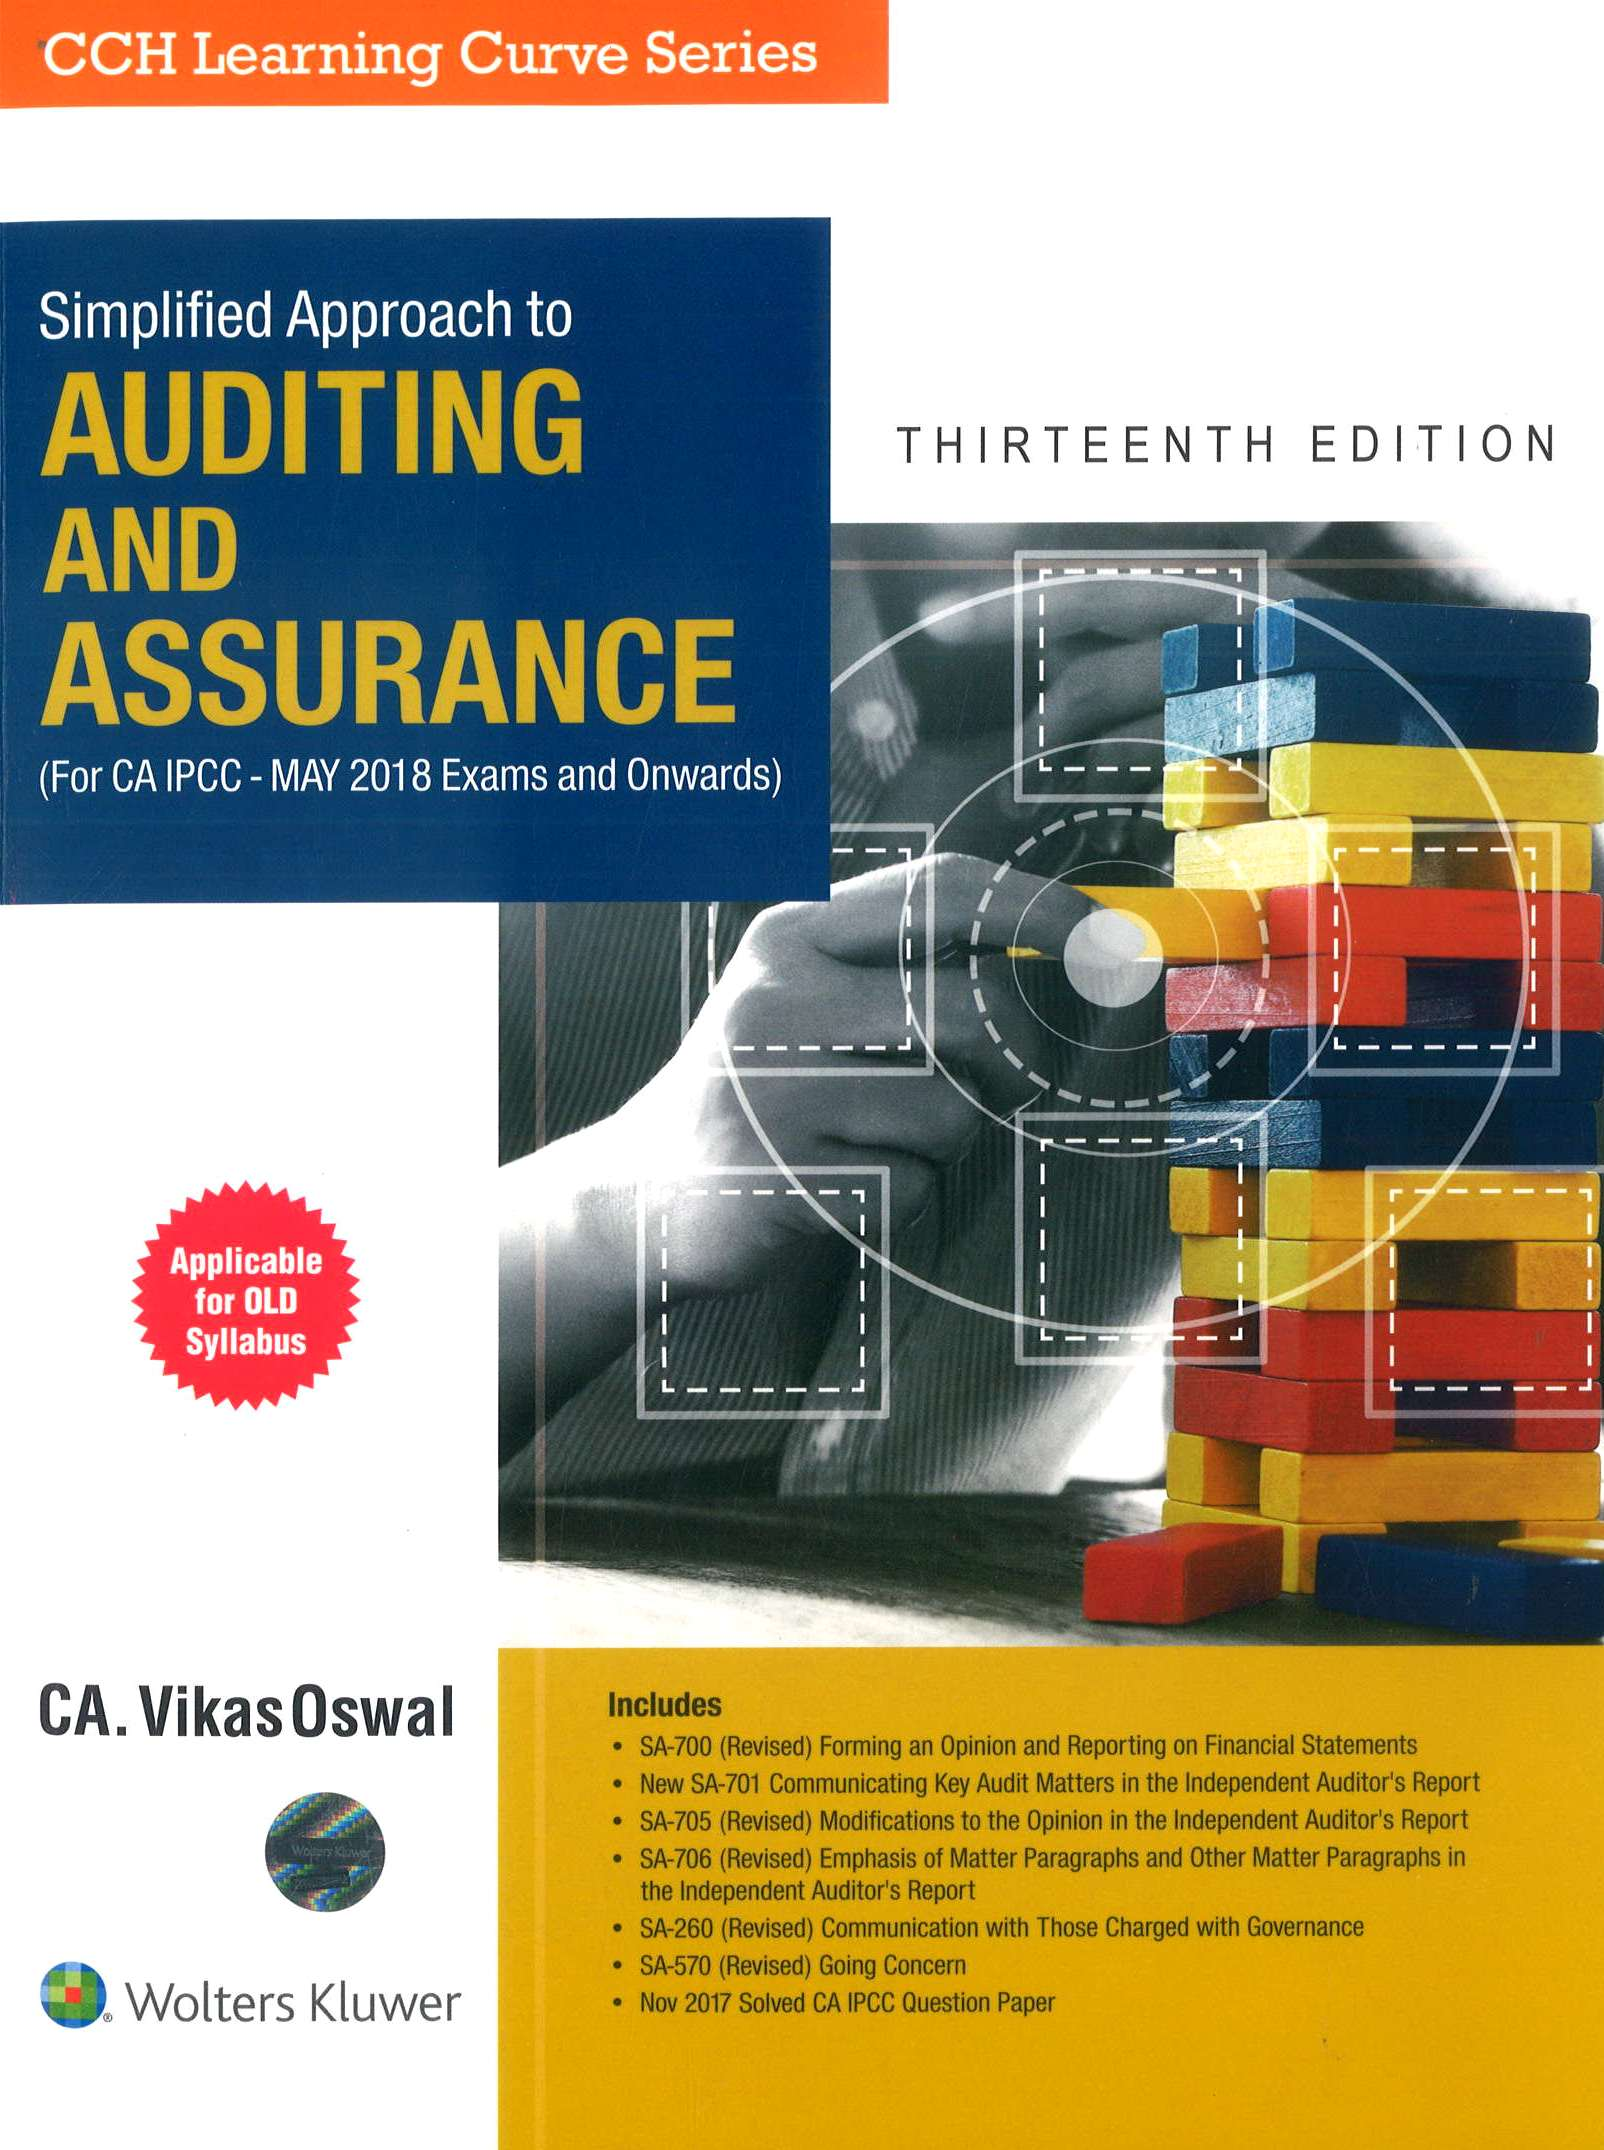 CCH Simplified Approach to Auditing and Assurance Old Syllabus for CA IPCC By Vikas Oswal Applicable for may 2018 Exam 13th Edition December 2017